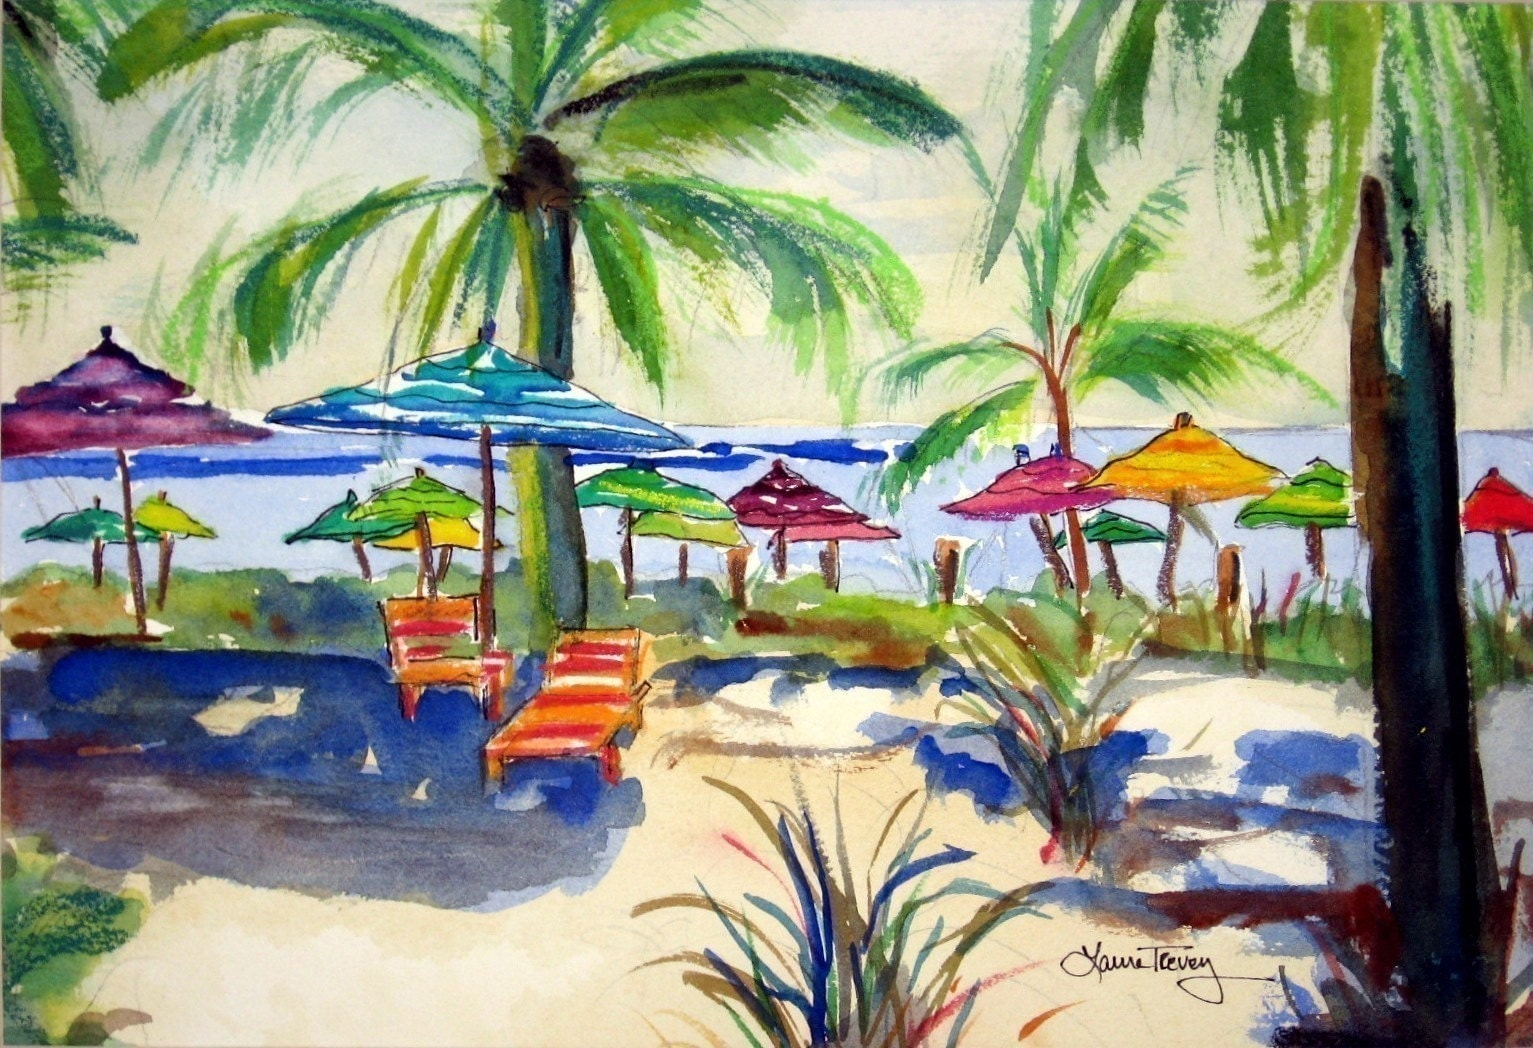 Caribbean Time, Limited Edition Watercolor, 8 by 10, by Laura Trevey by lauratrevey on Etsy from etsy.com